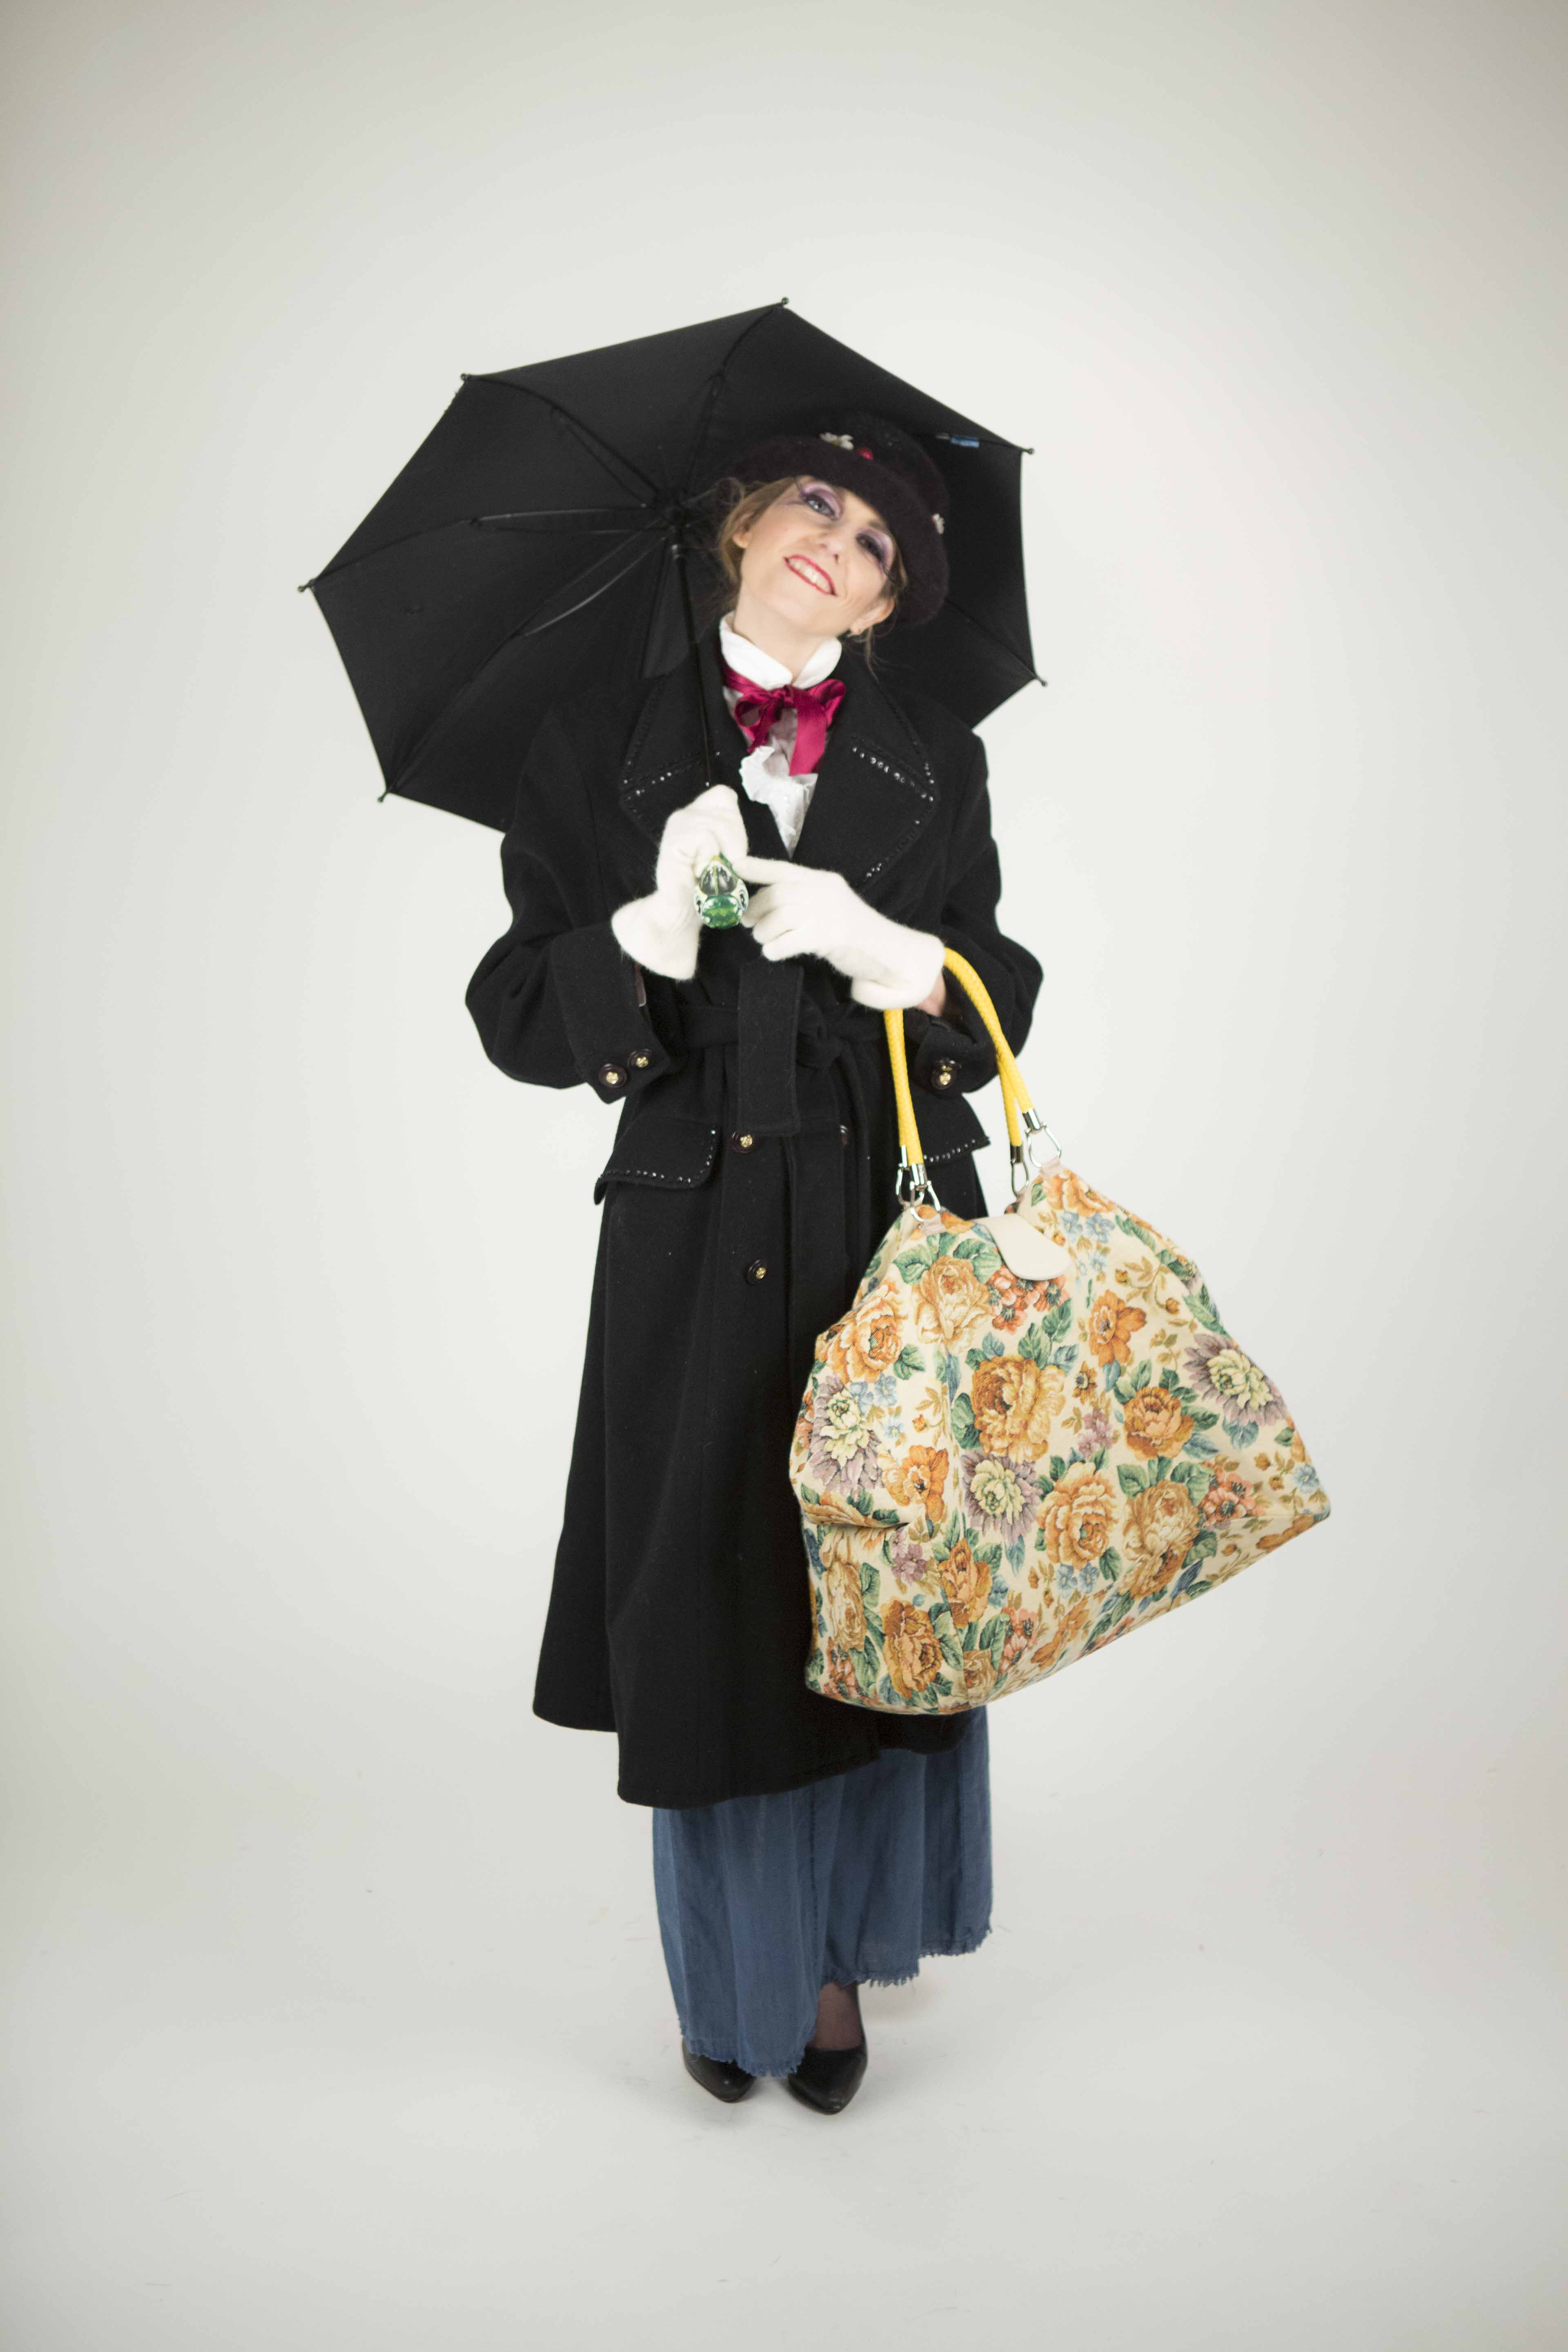 Blondy Violet _The True Story of Mary Poppins Rights Reserverd: Cecilia Pratizzoli